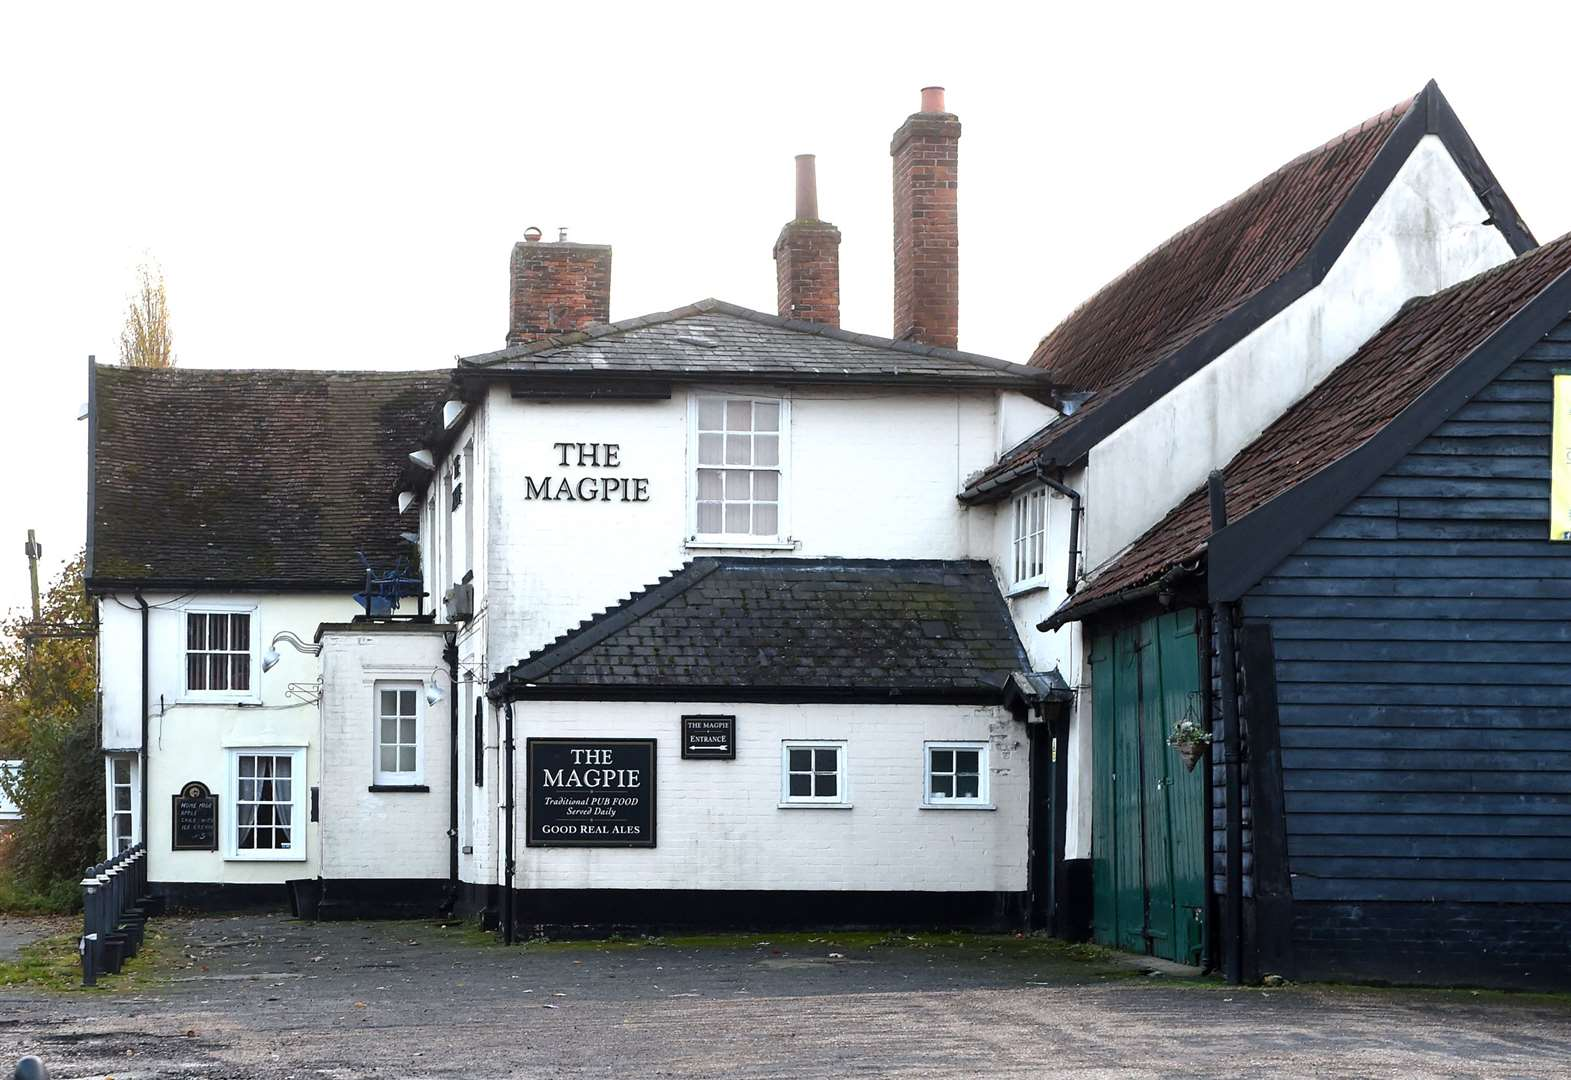 Little Stonham death: Woman named following murder investigation at Magpie Inn